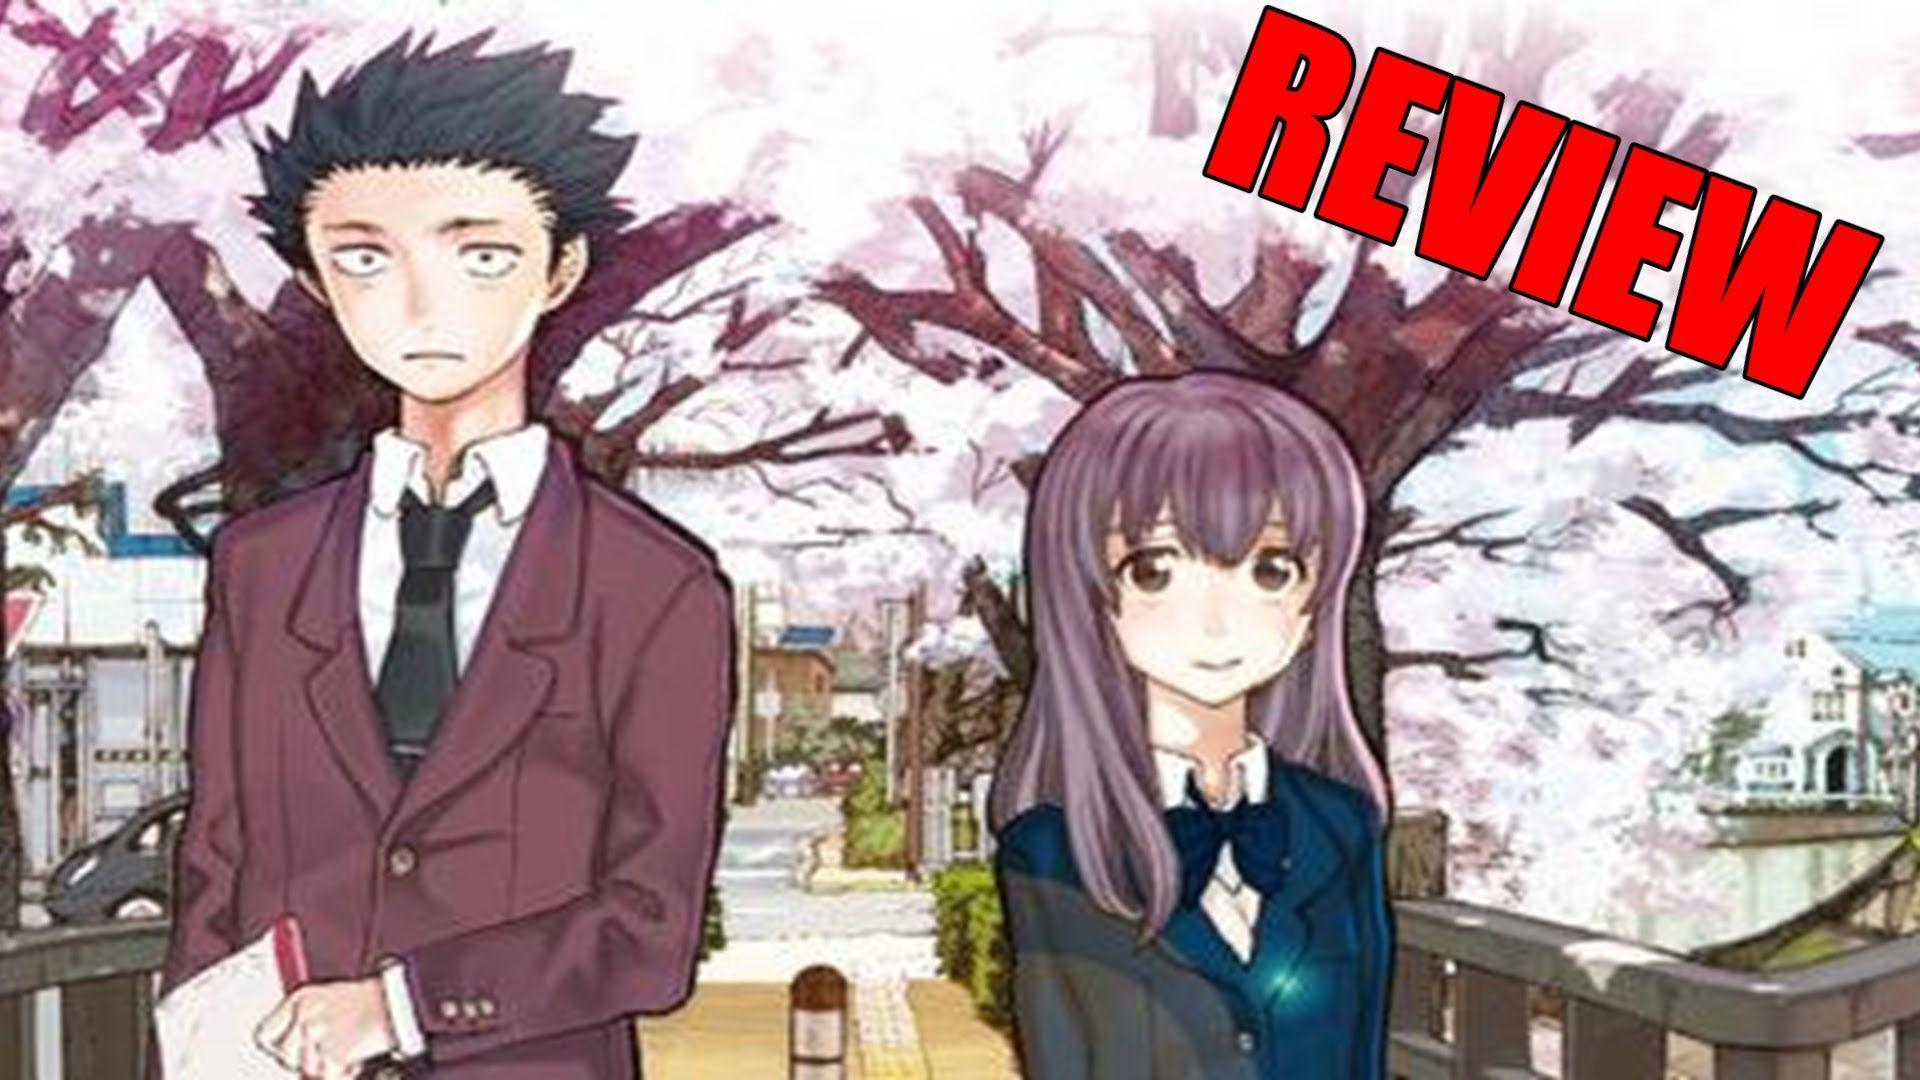 A Silent Voice Full Manga Series Review - YouTube